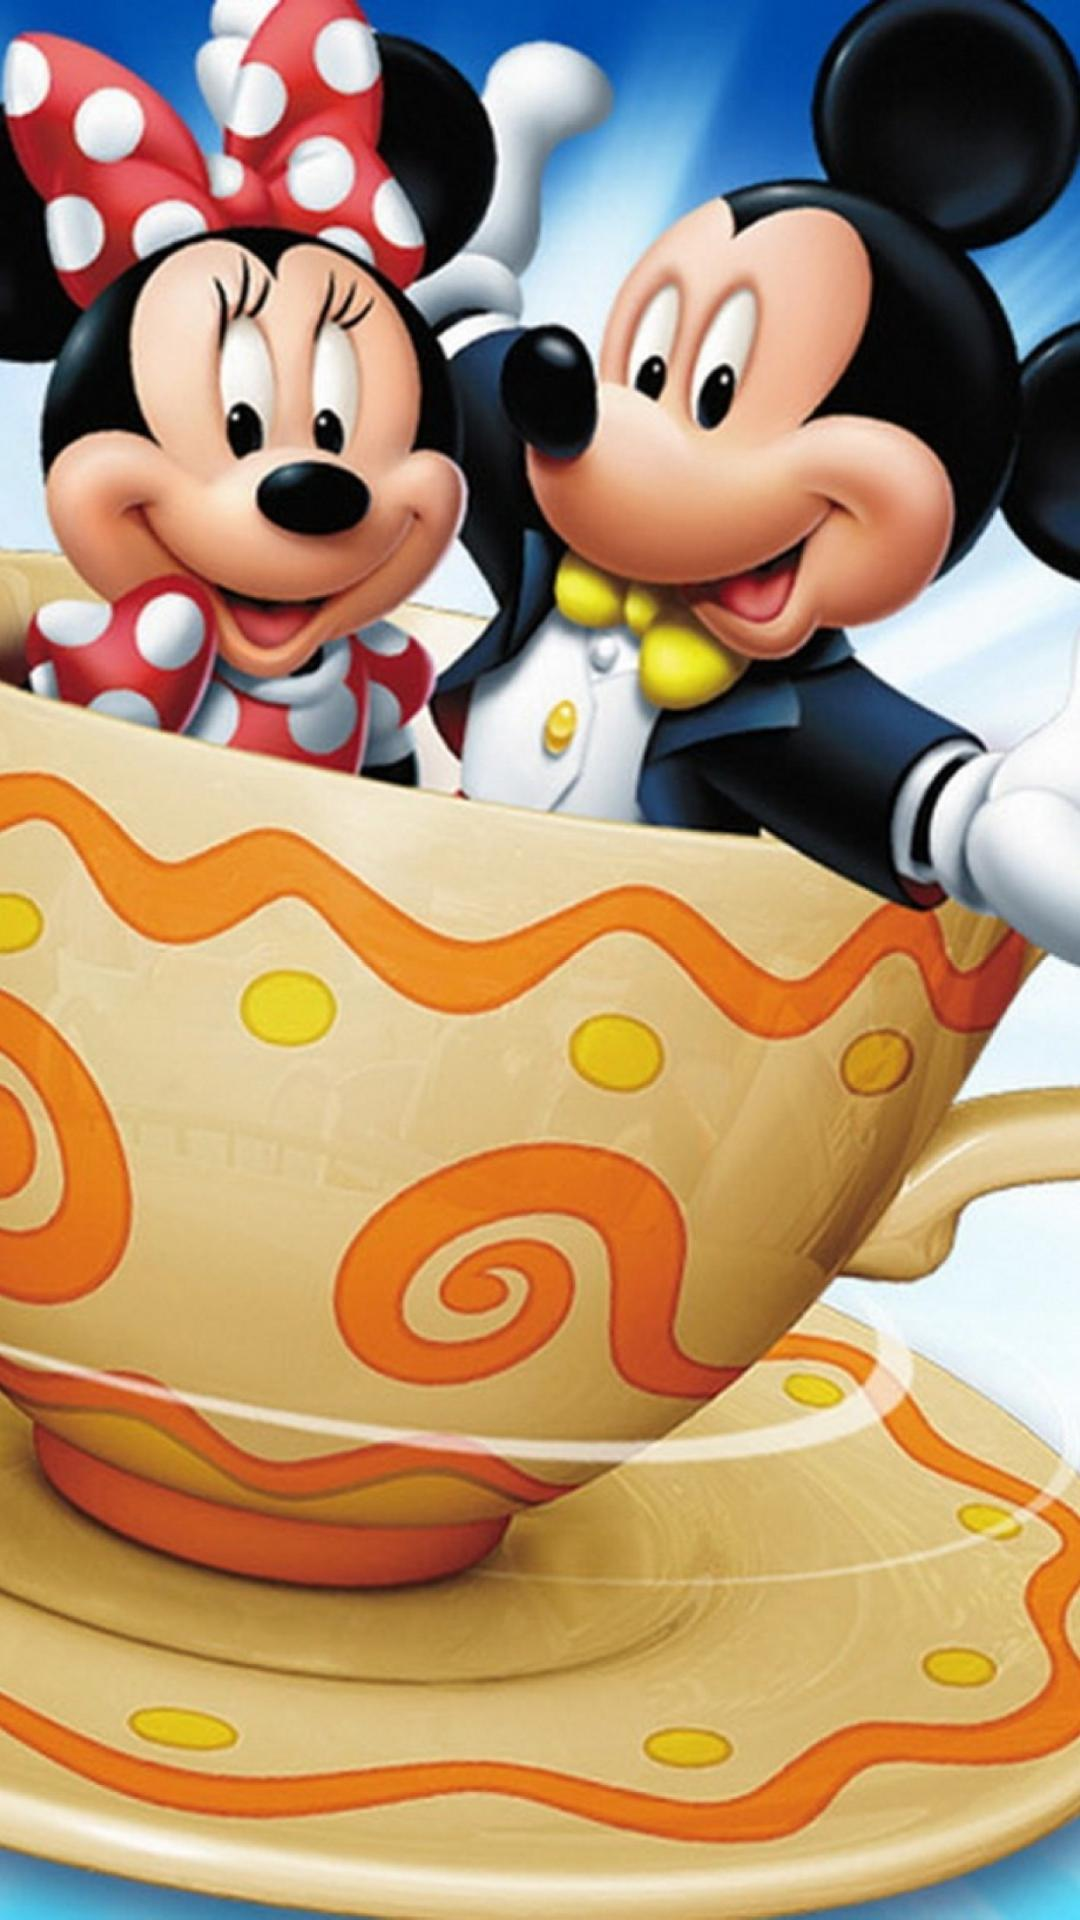 Mickey Wallpaper For Android Apk Download